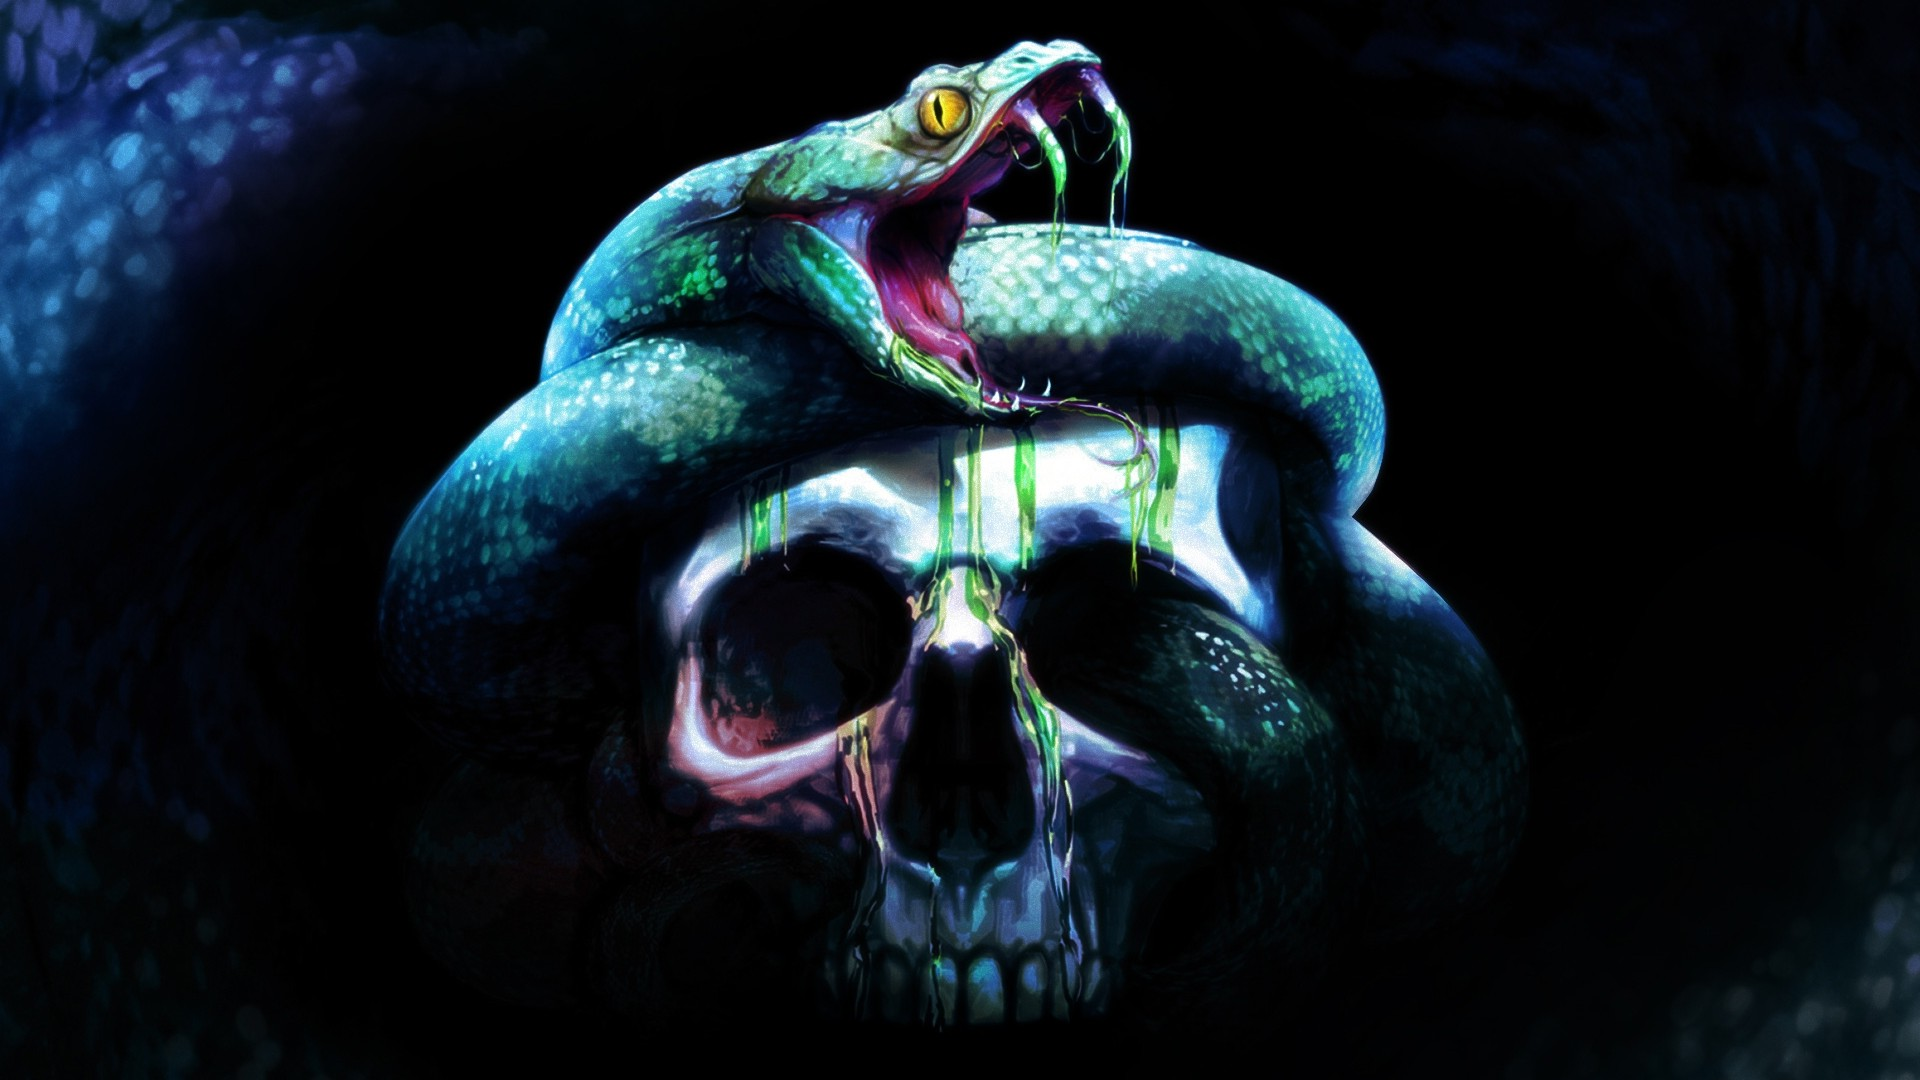 Creature 3d Movie Wallpaper Download Digital Art Skull Teeth Snake Animals Dark Wallpapers